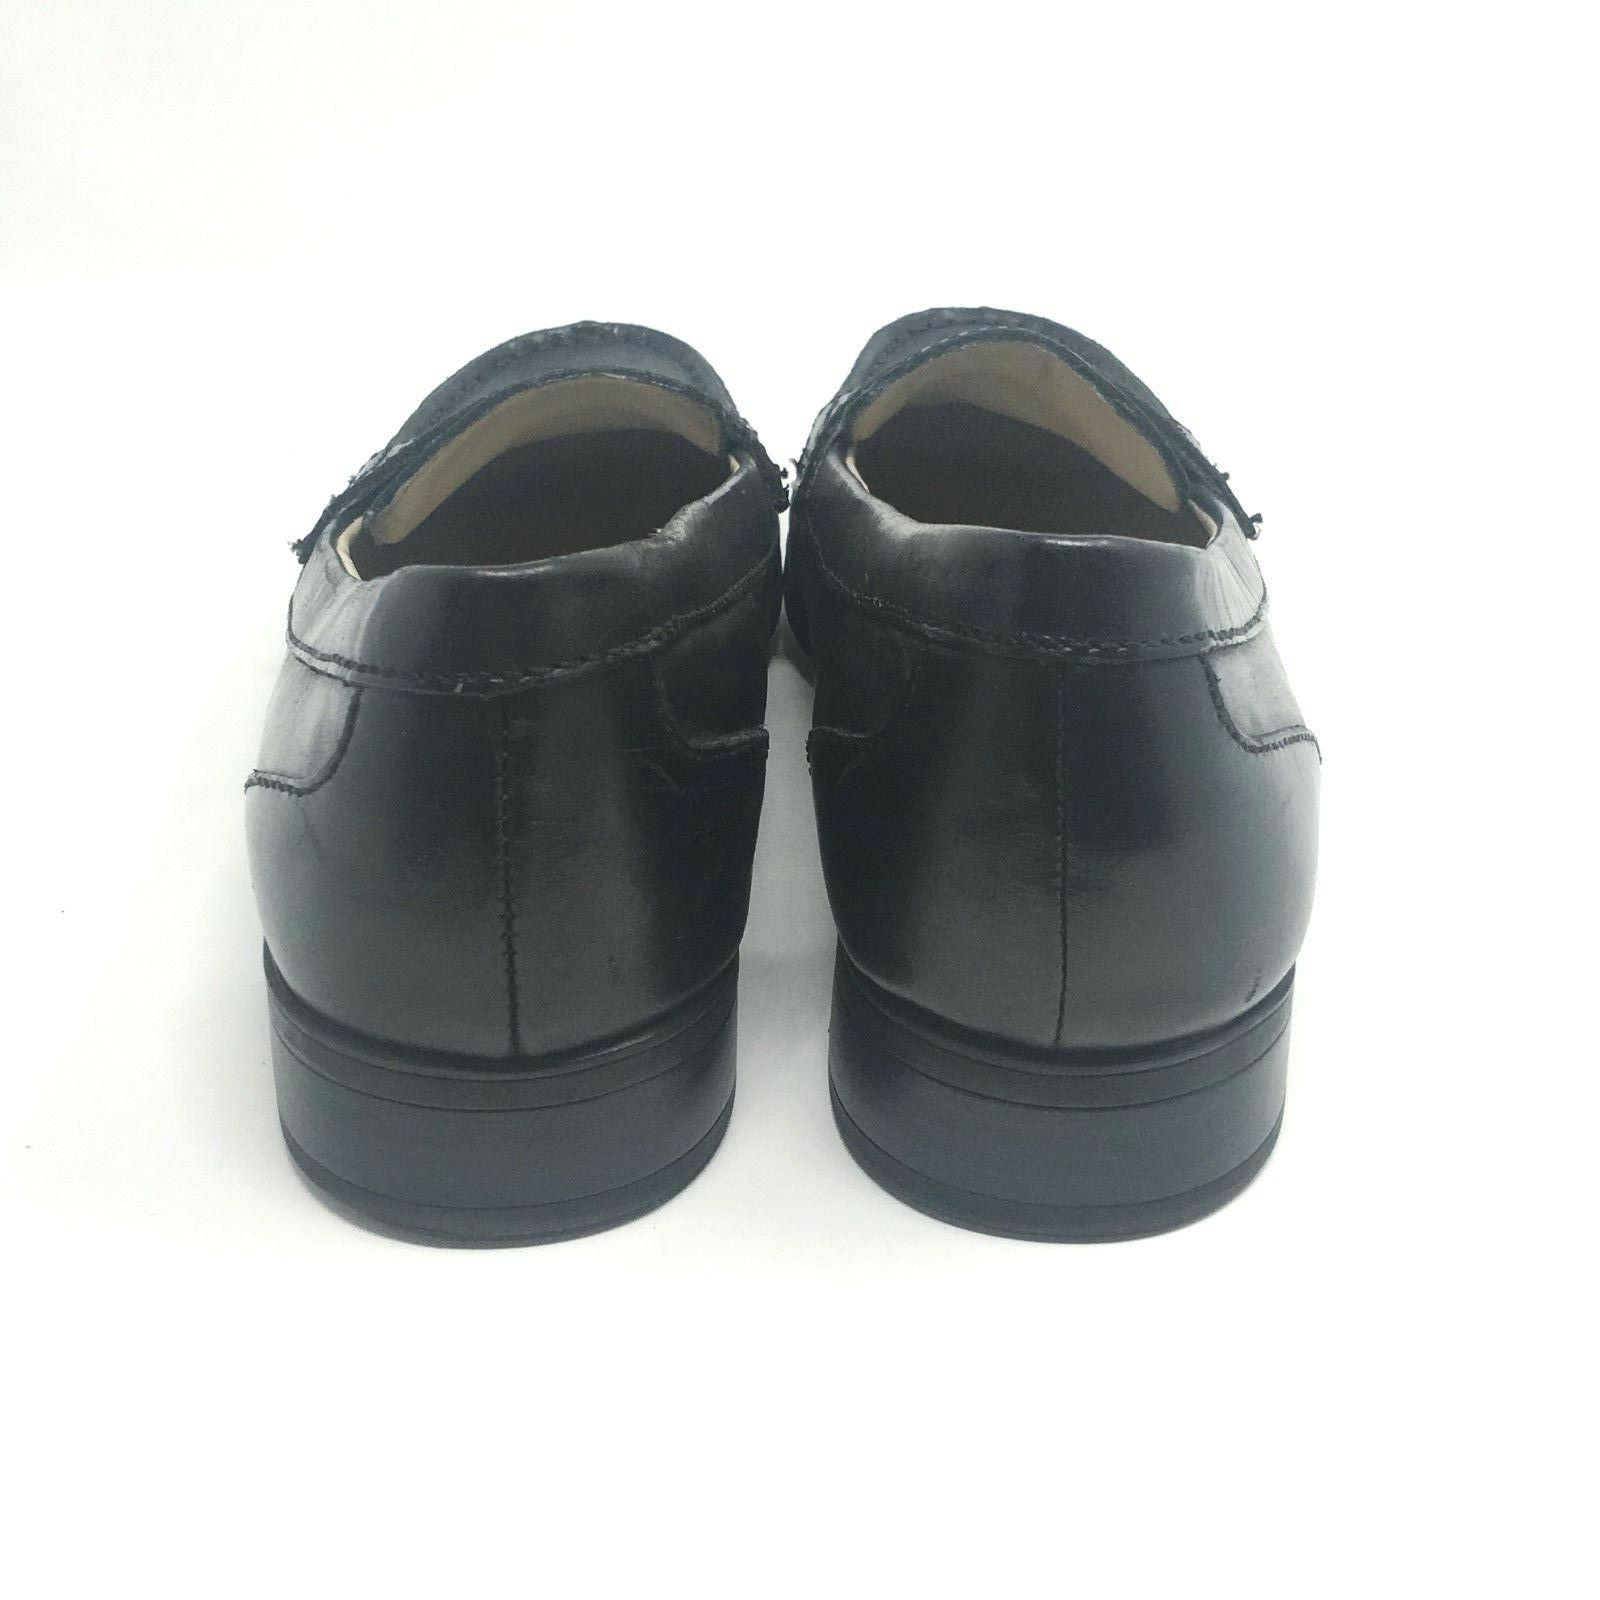 Naturalizer N5 Comfort Black June Size 9N NWOT